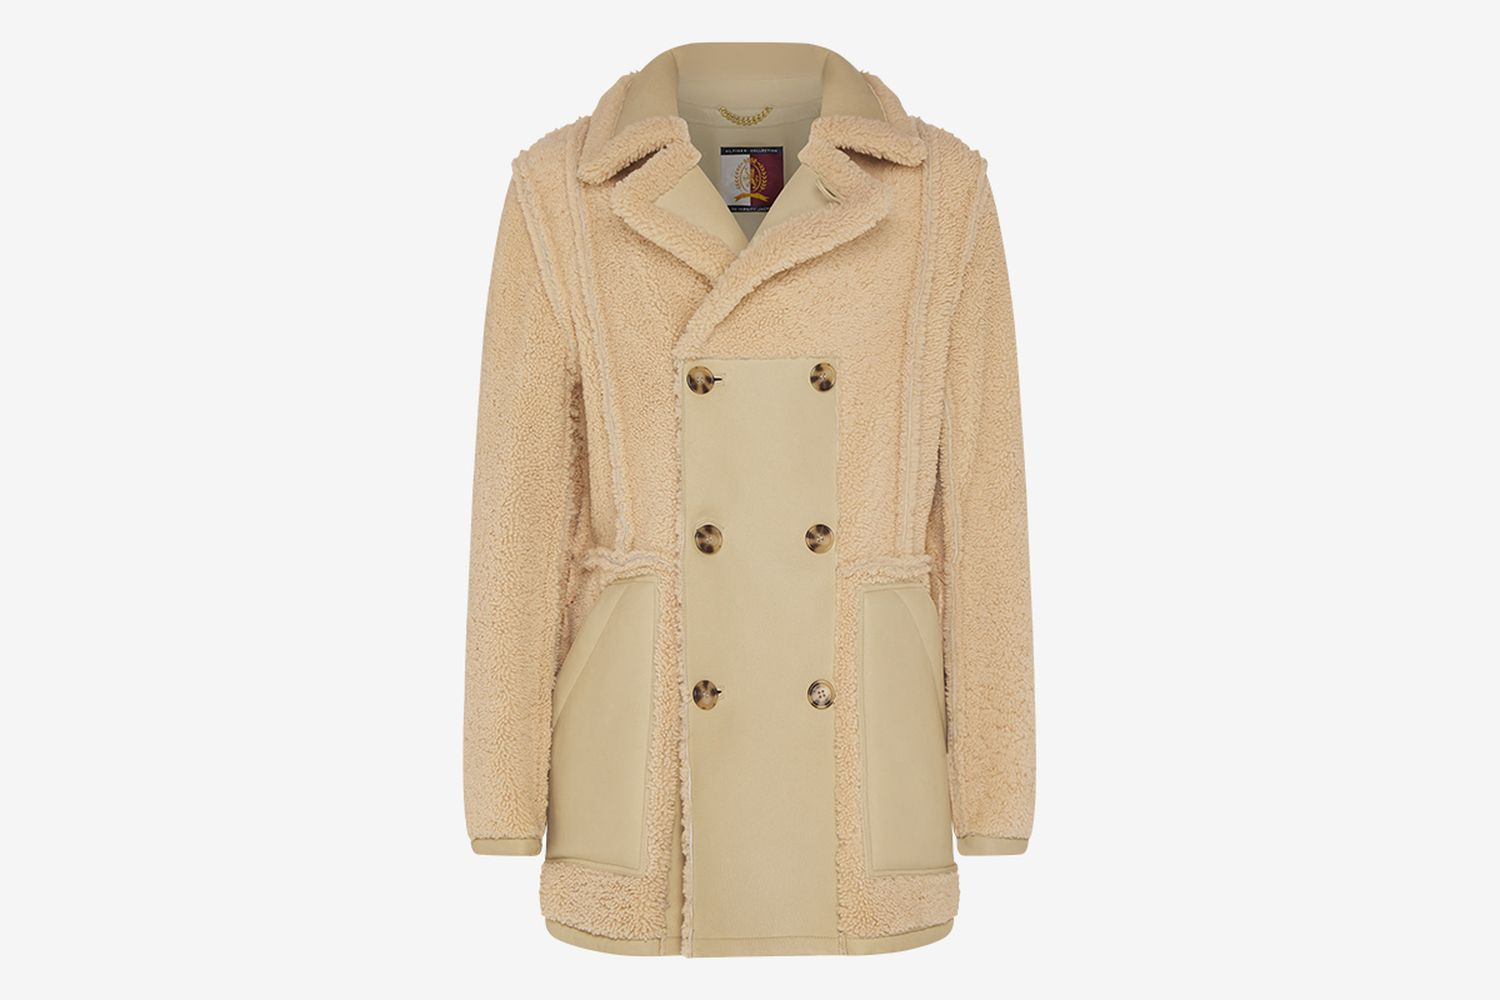 Hilfiger Collection Reversible Shearling Coat